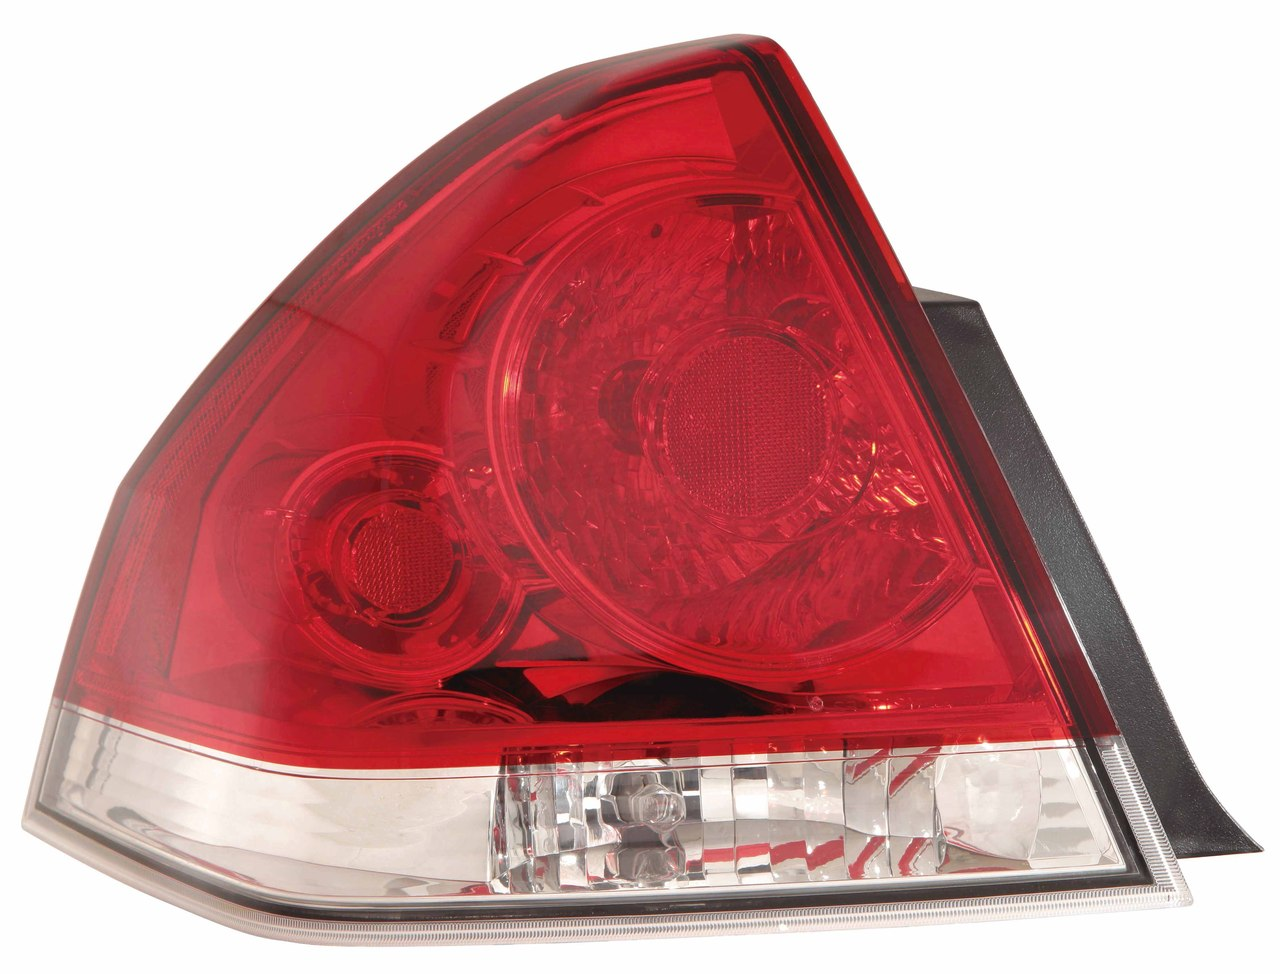 Chevrolet Impala 2006 2007 2008 2009 tail light left driver